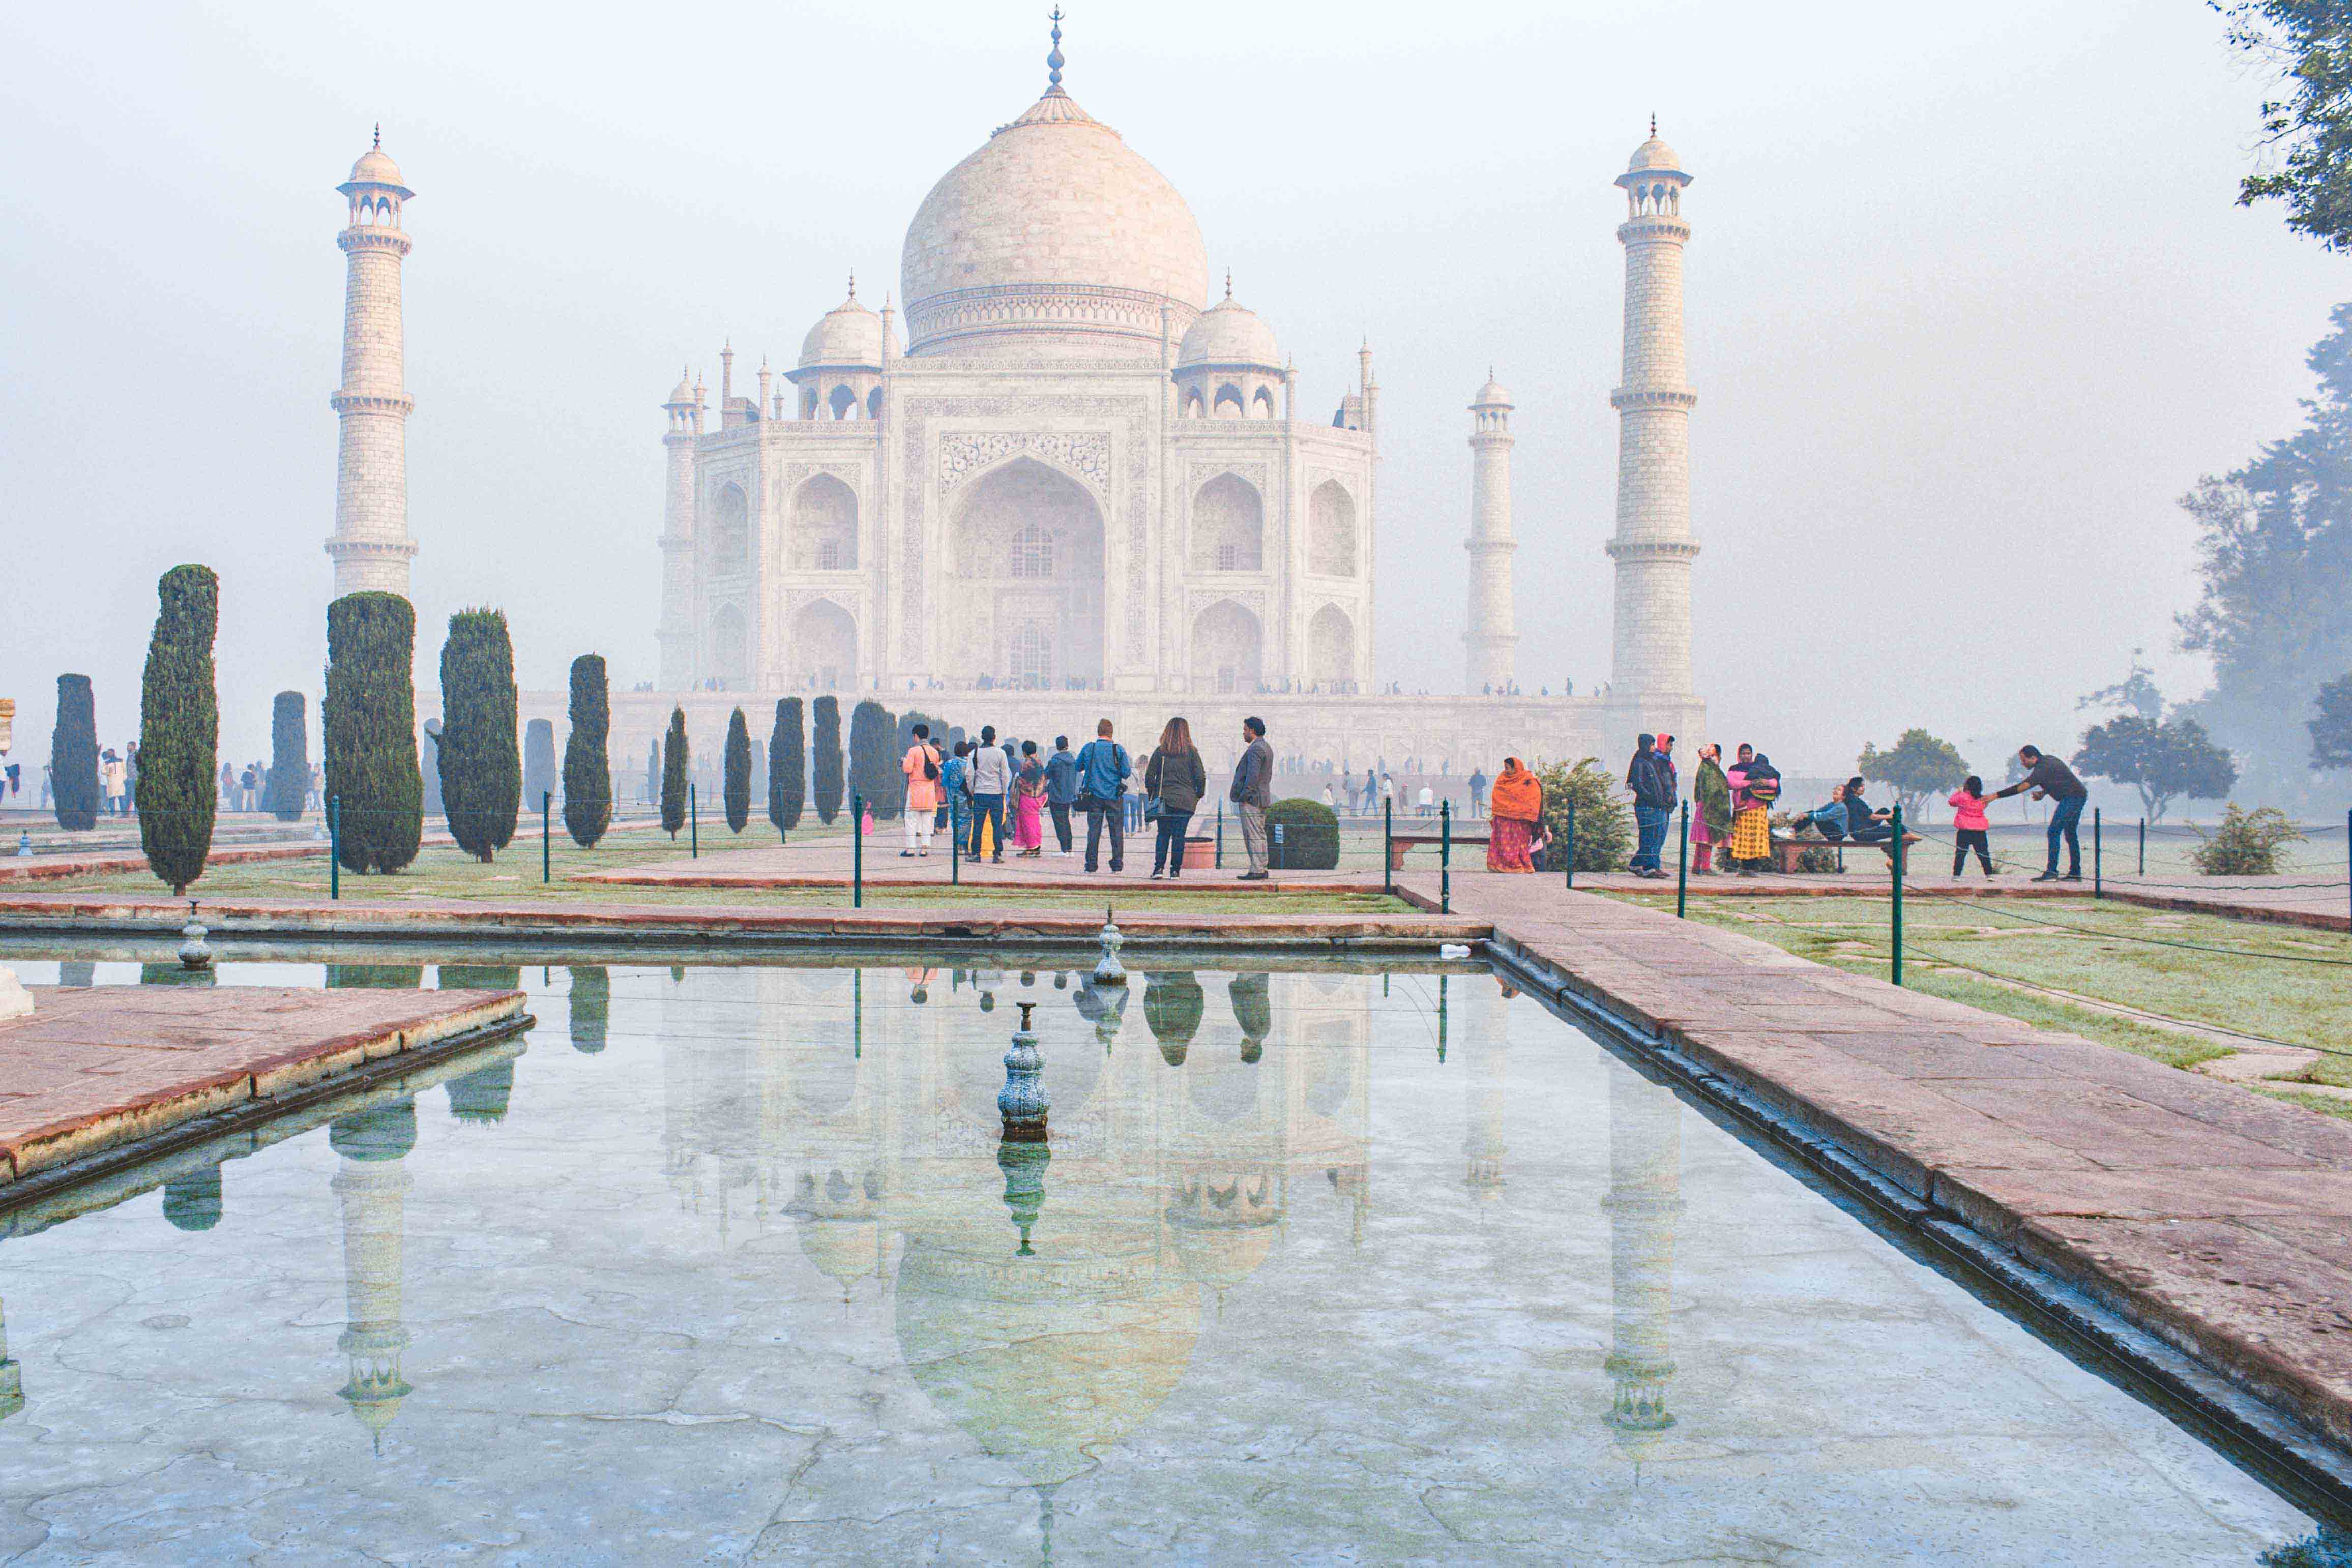 Agra: Sunrise Taj Mahal Tour Including Hotel Pick-up and drop-off